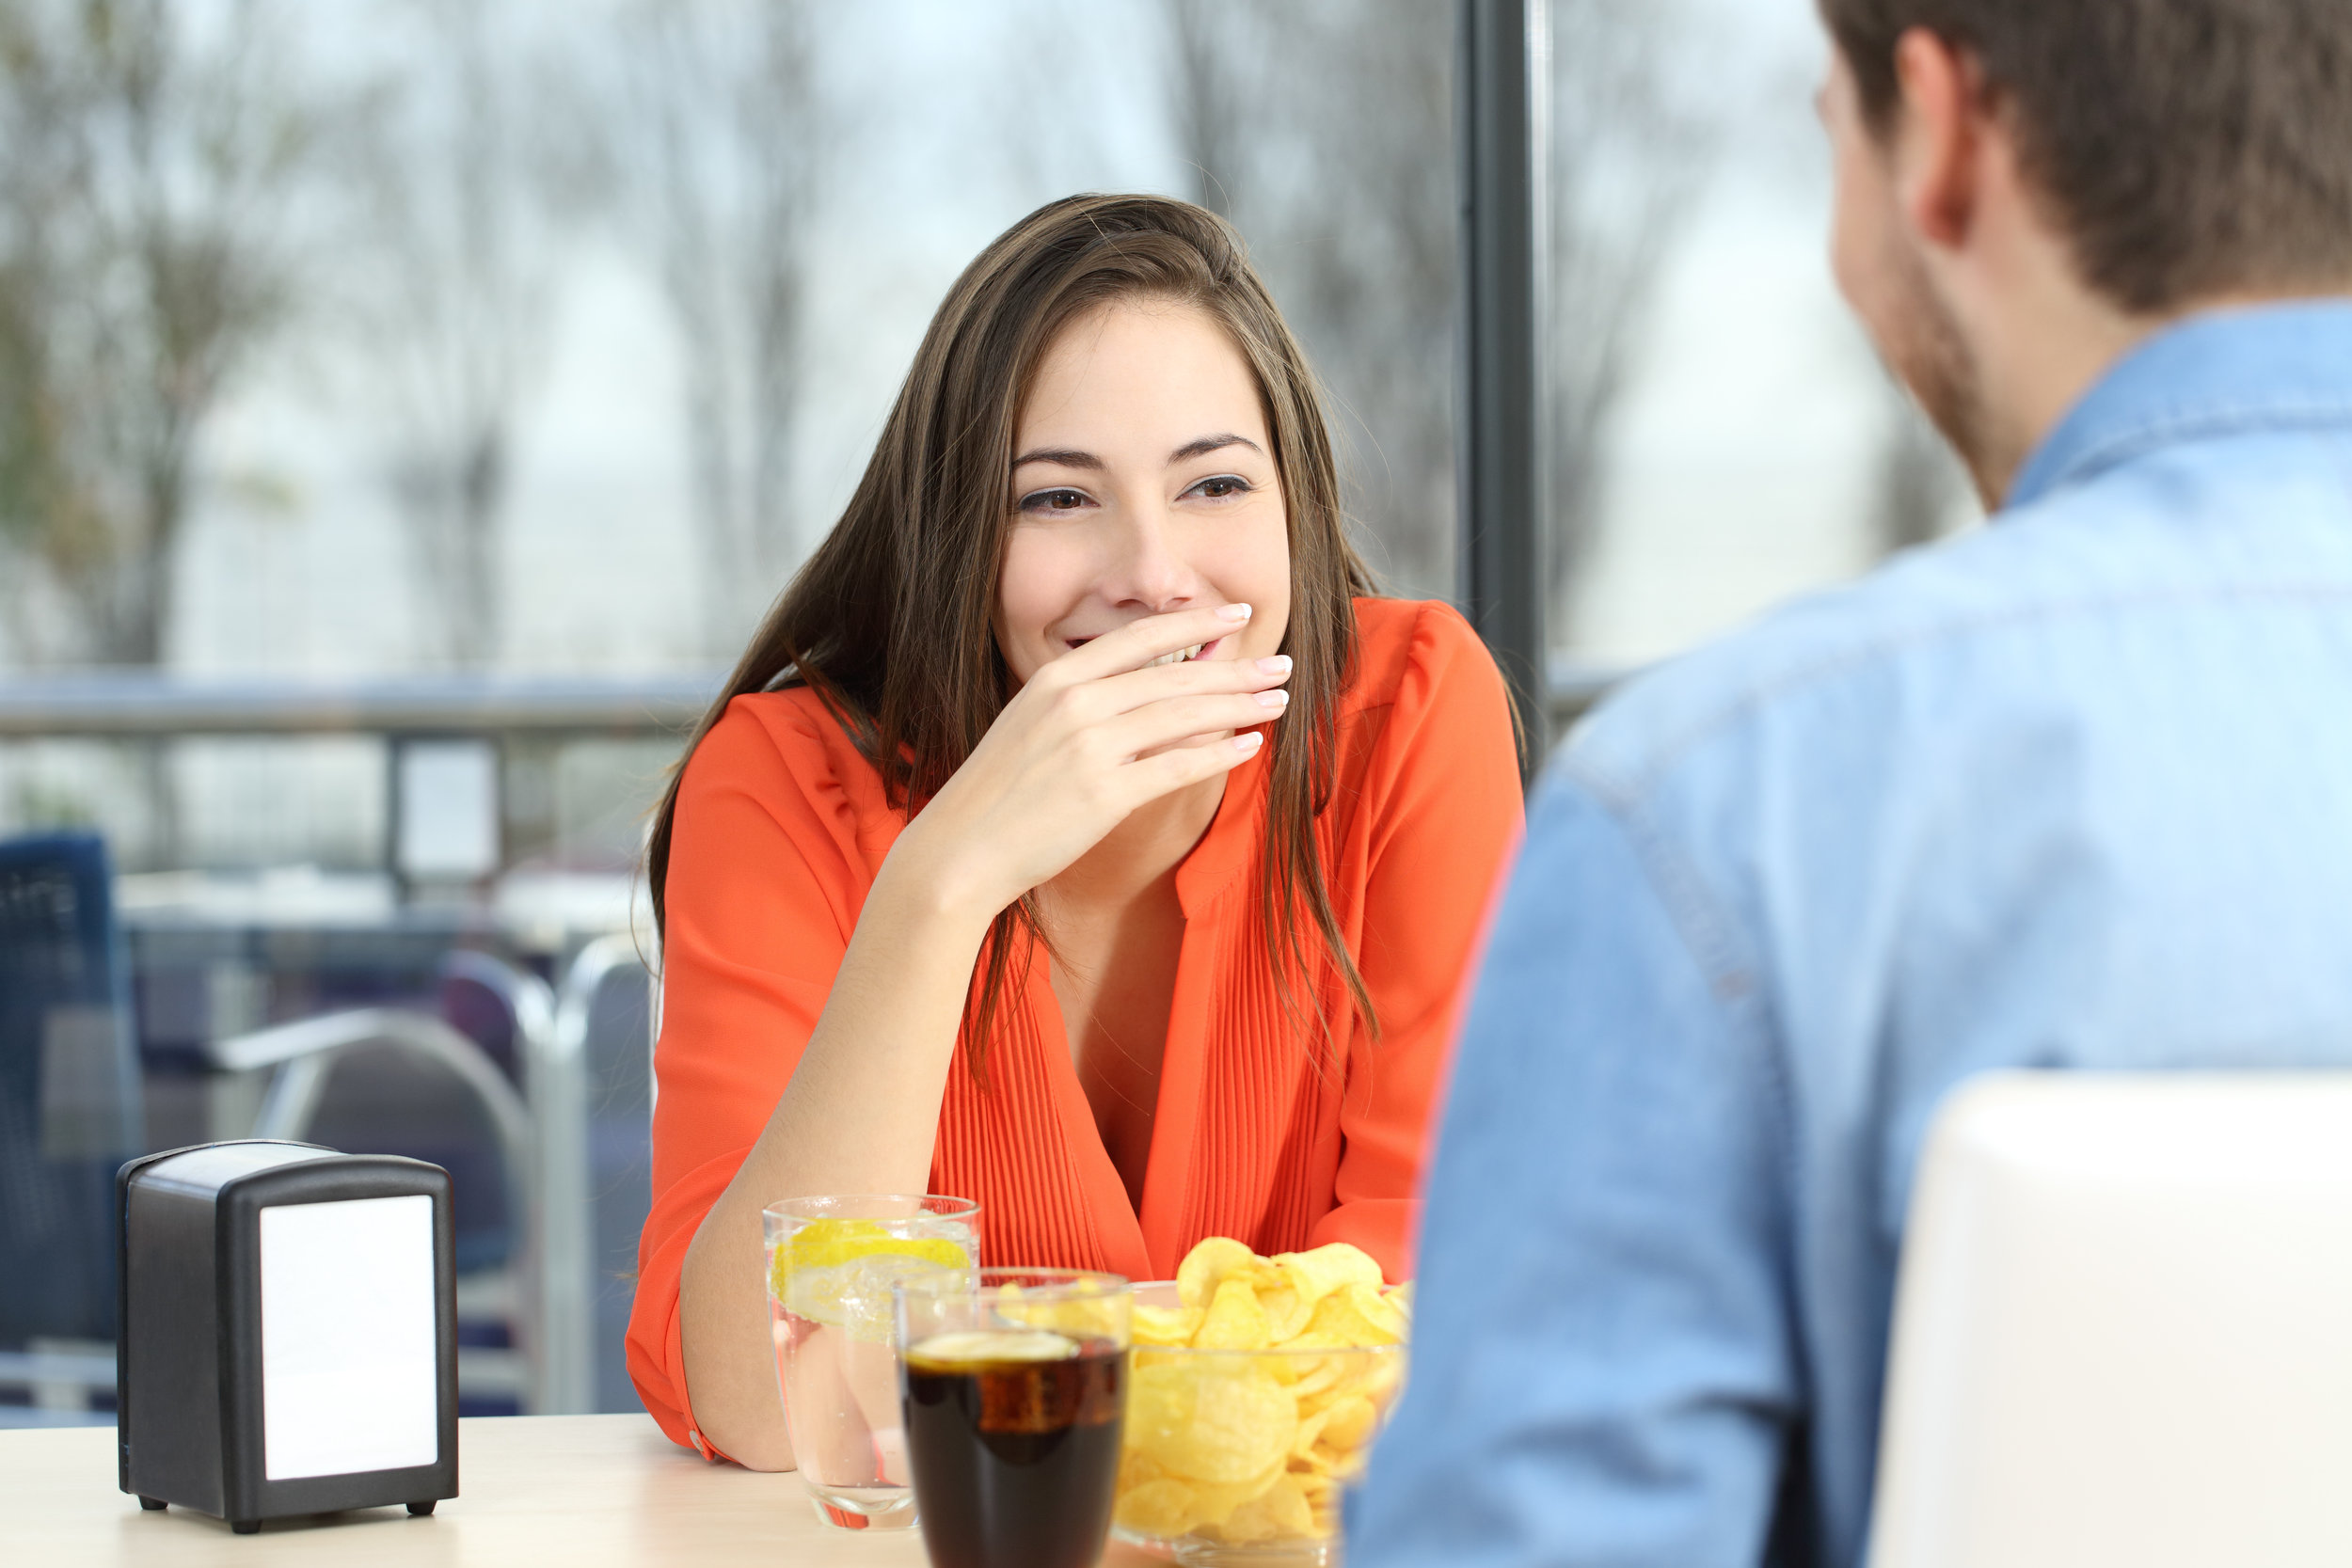 Woman+covering+her+mouth+to+hide+smile+or+breath.jpg